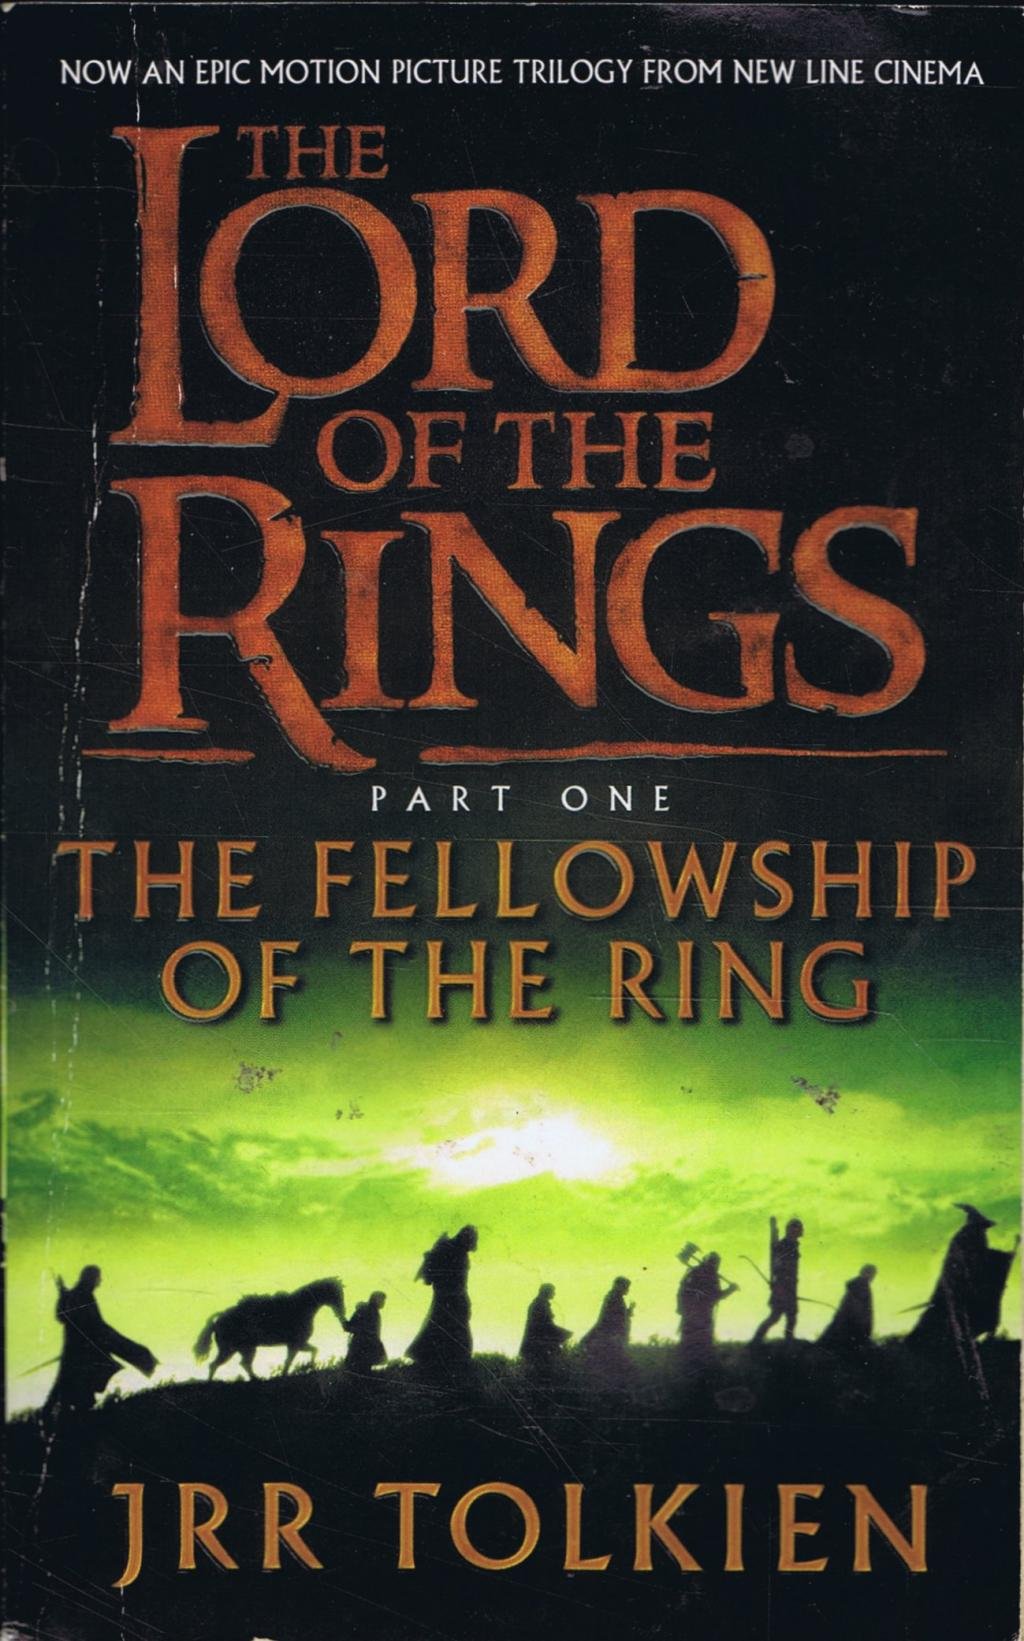 an analysis about power is evil in the fellowship of the ring by jrr tolkien